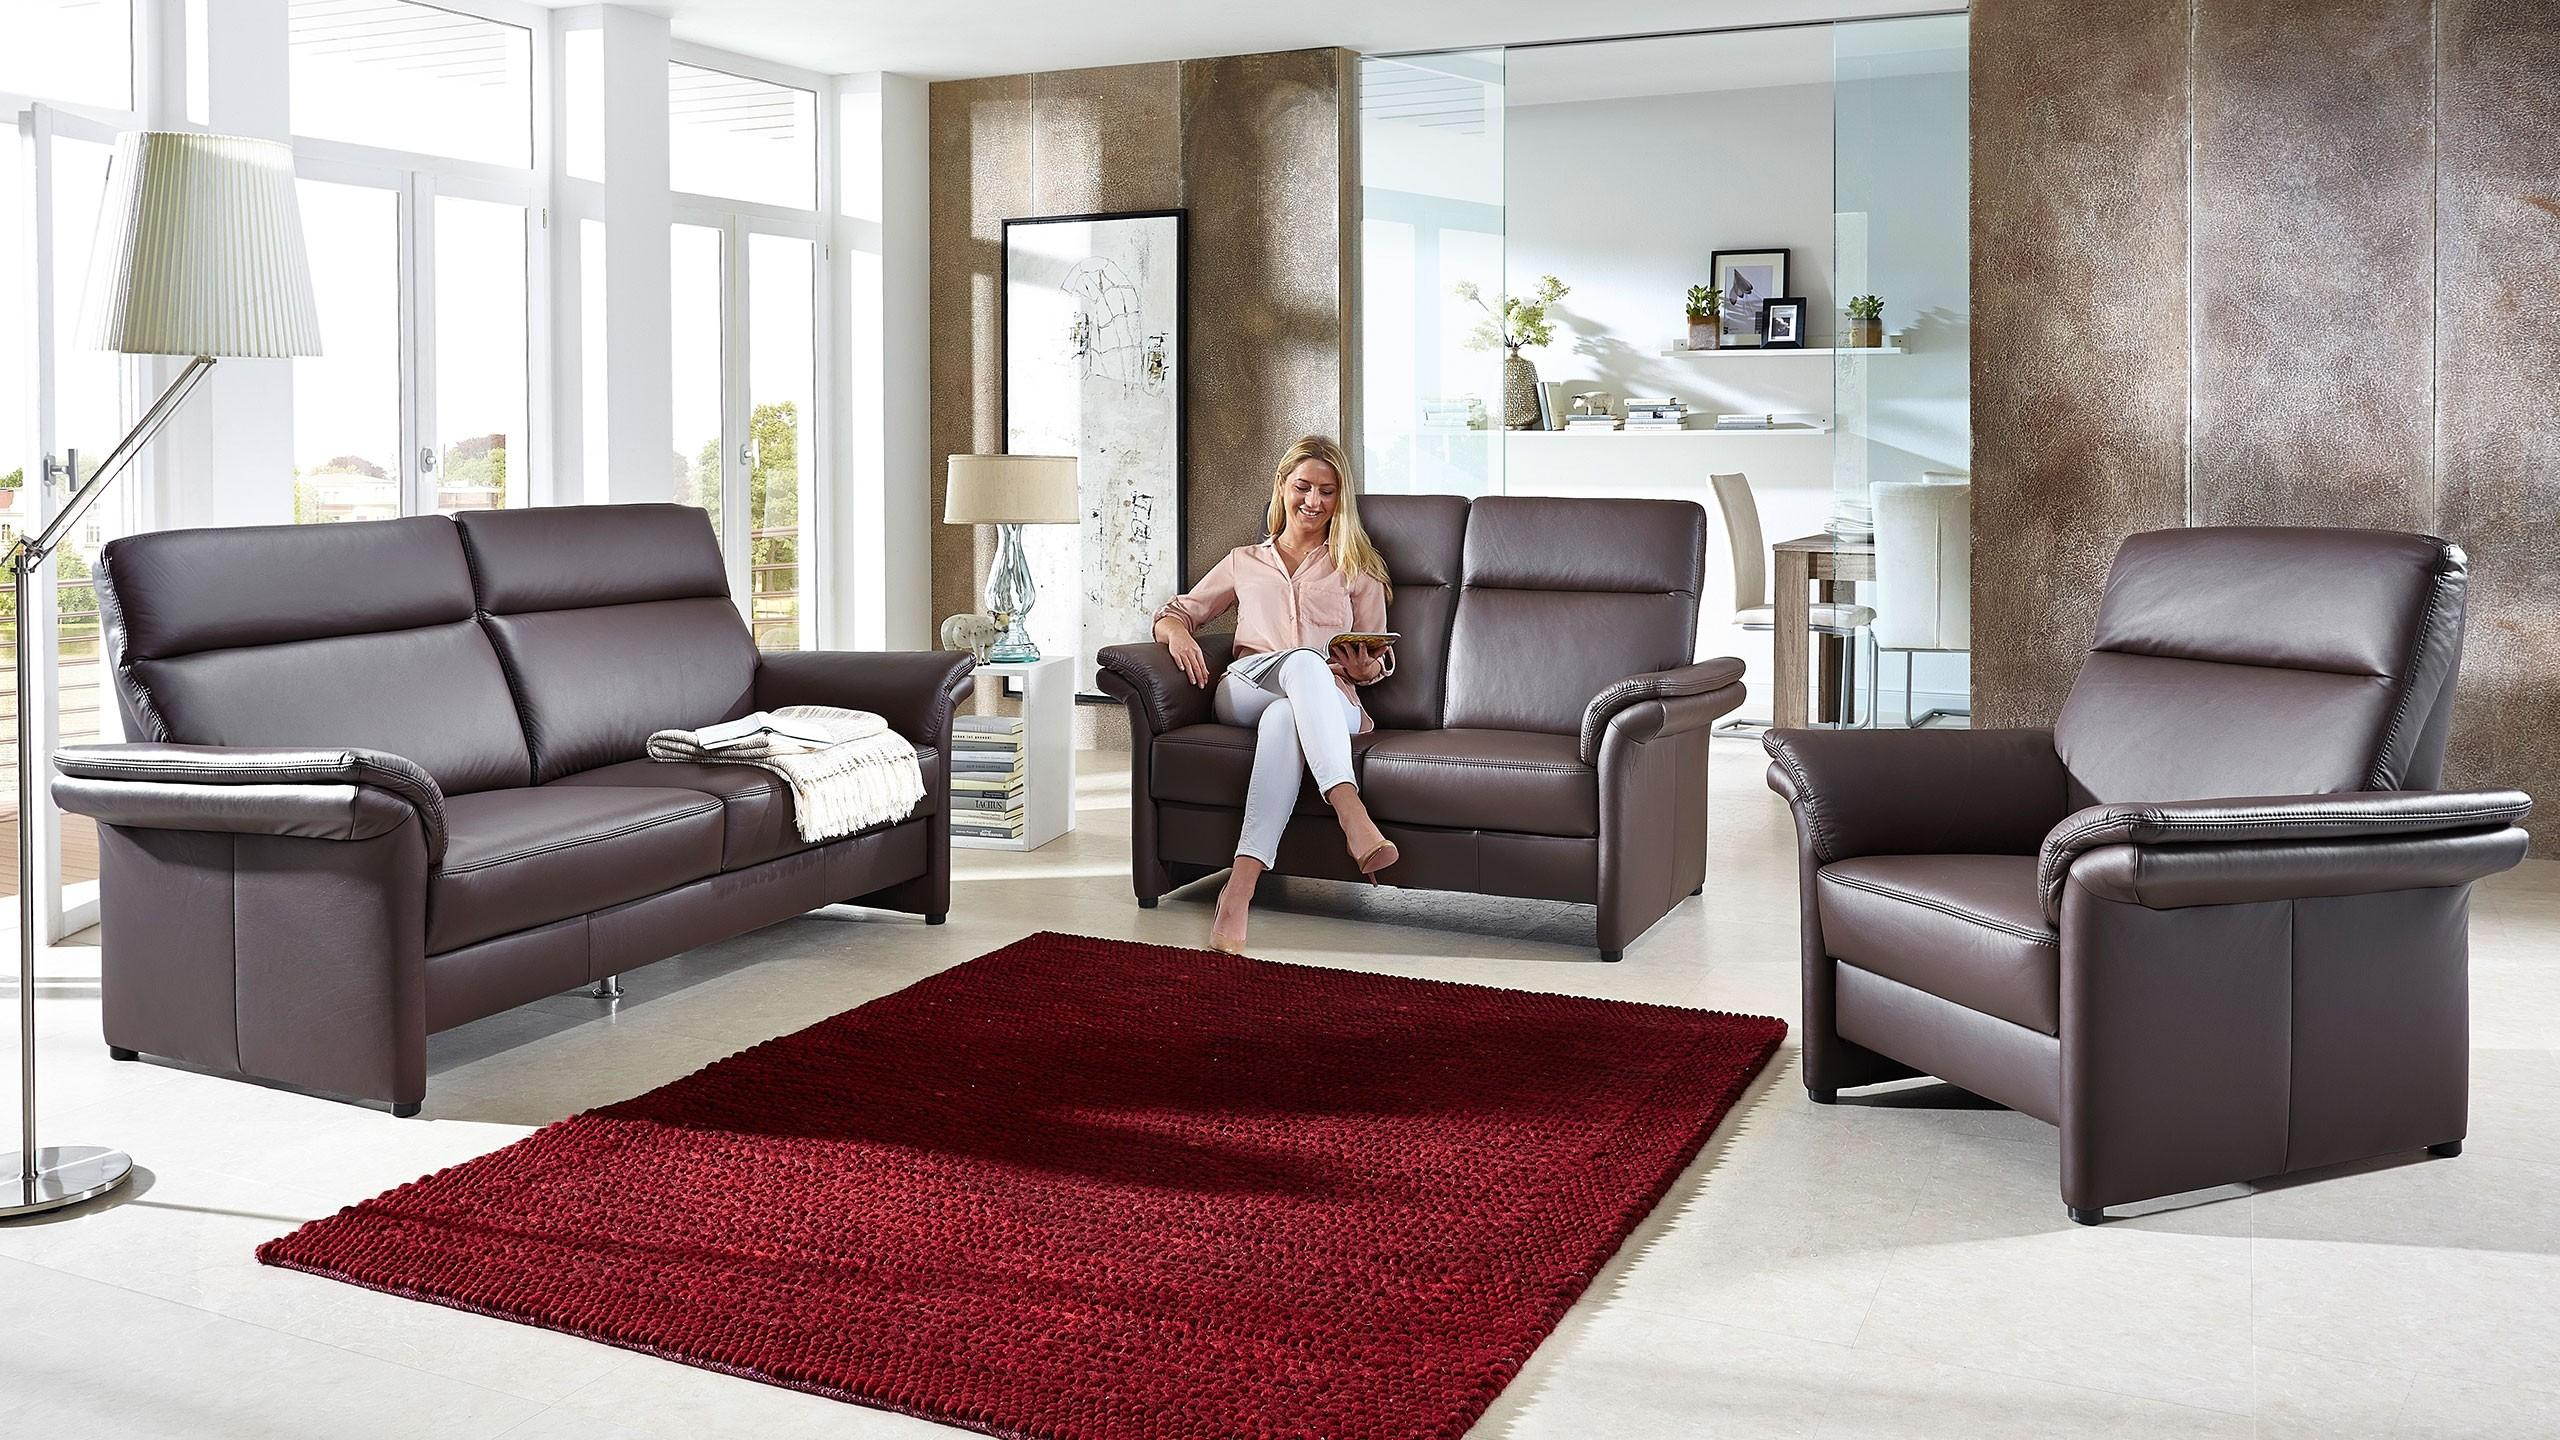 London Sofa Leder Braun